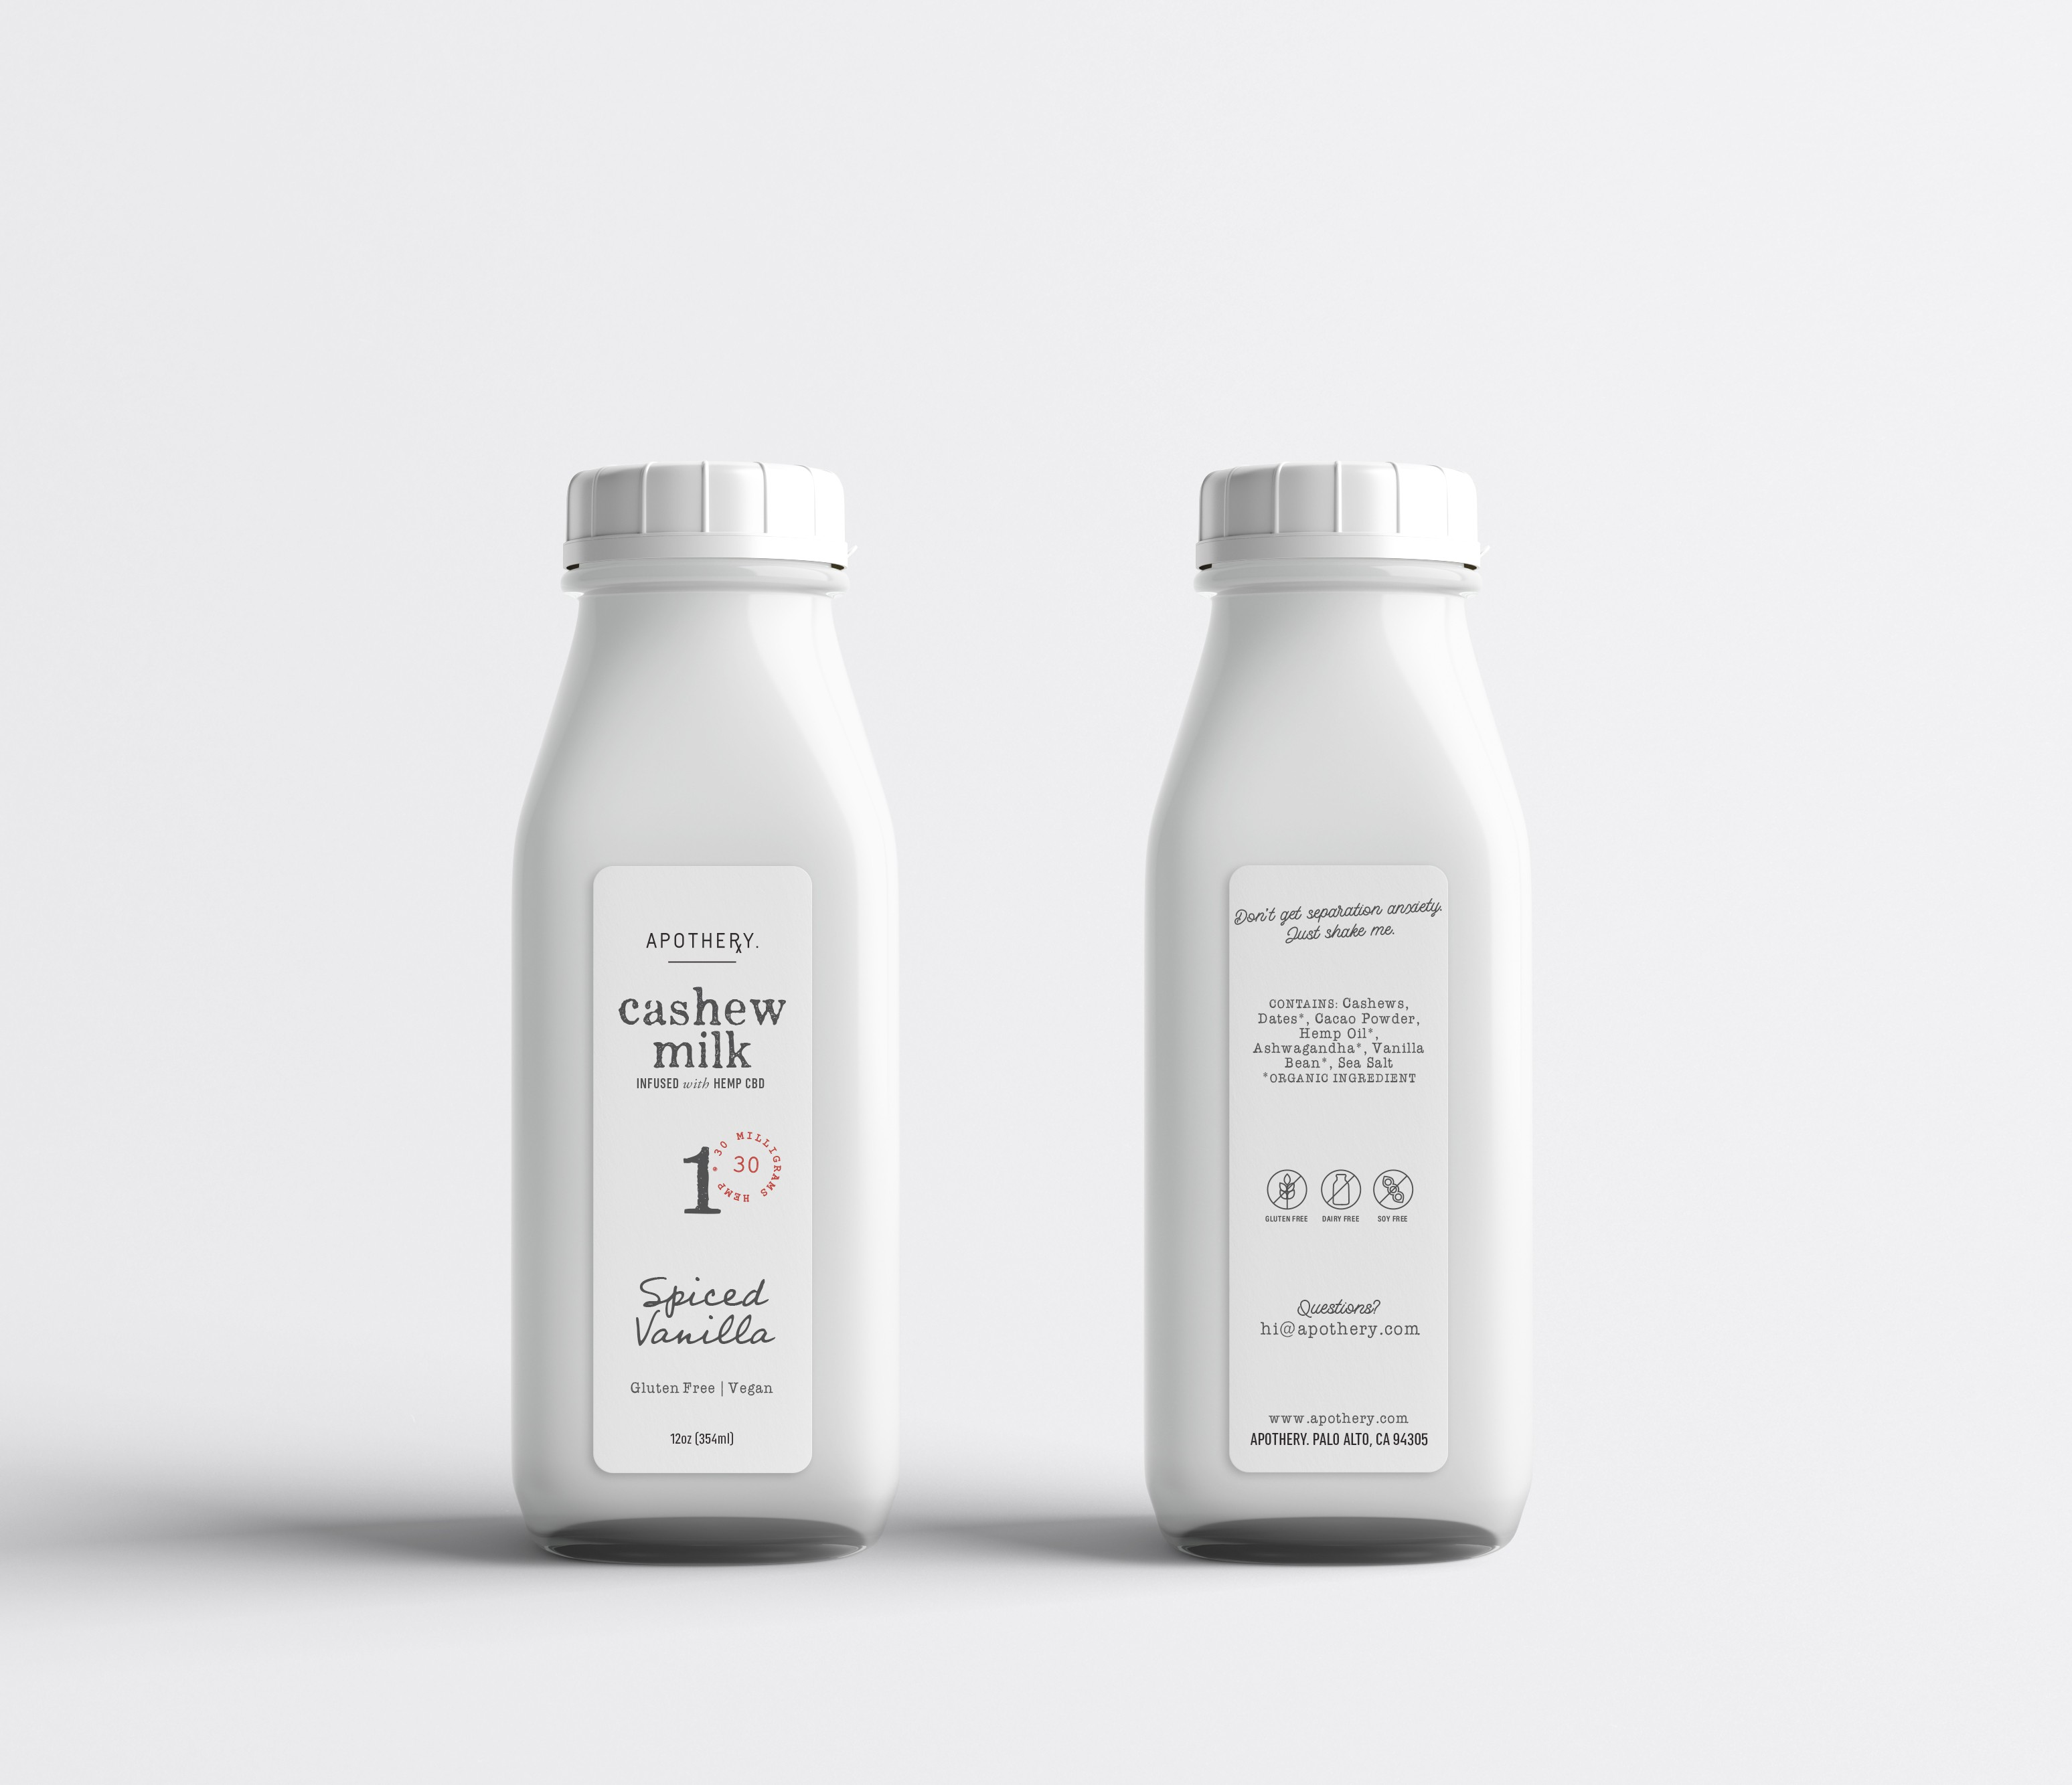 Packaging for Apothery, a luscious cashew milk infused with CBD oil.